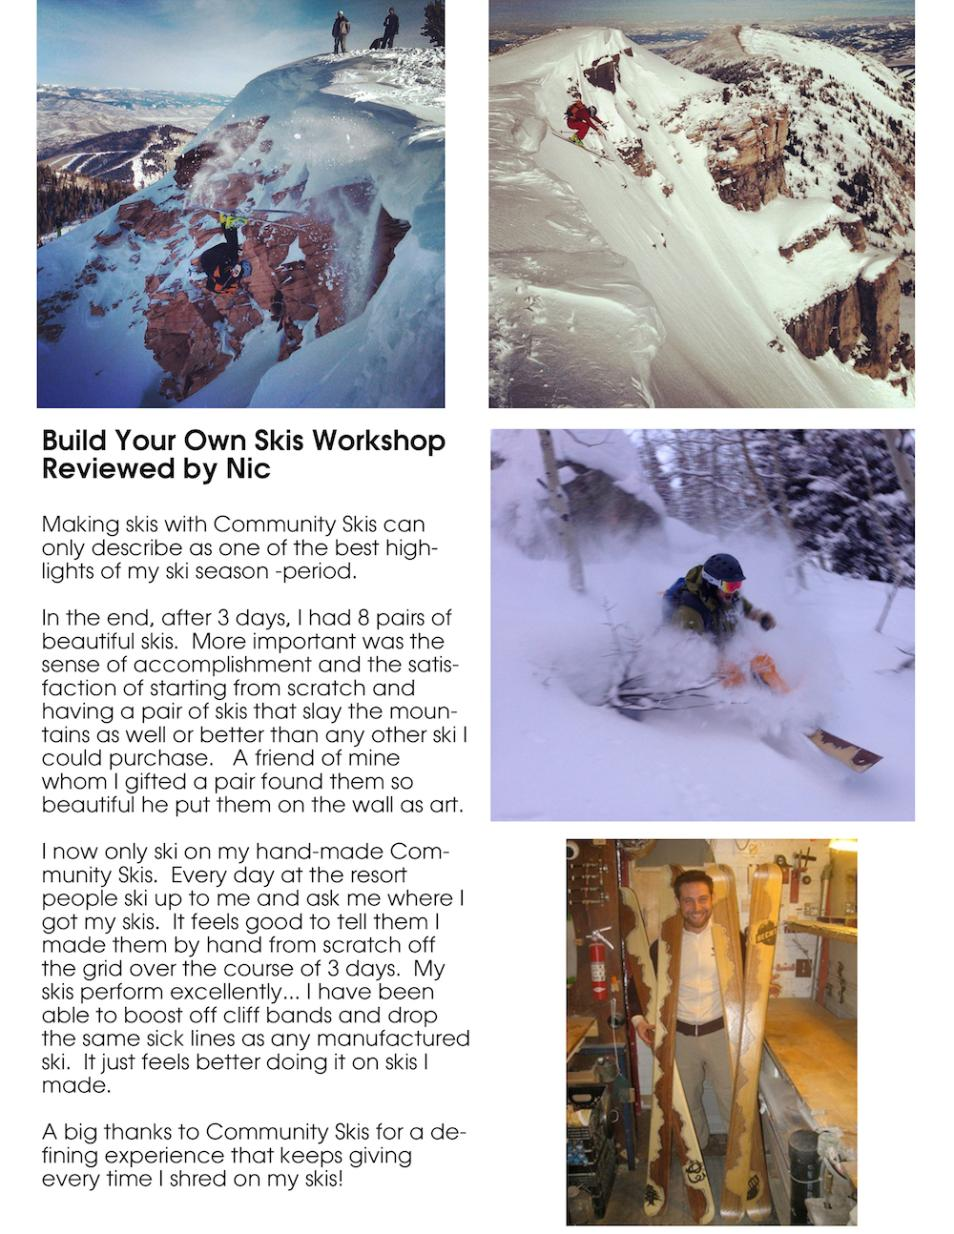 Build Your Own Custom Skis